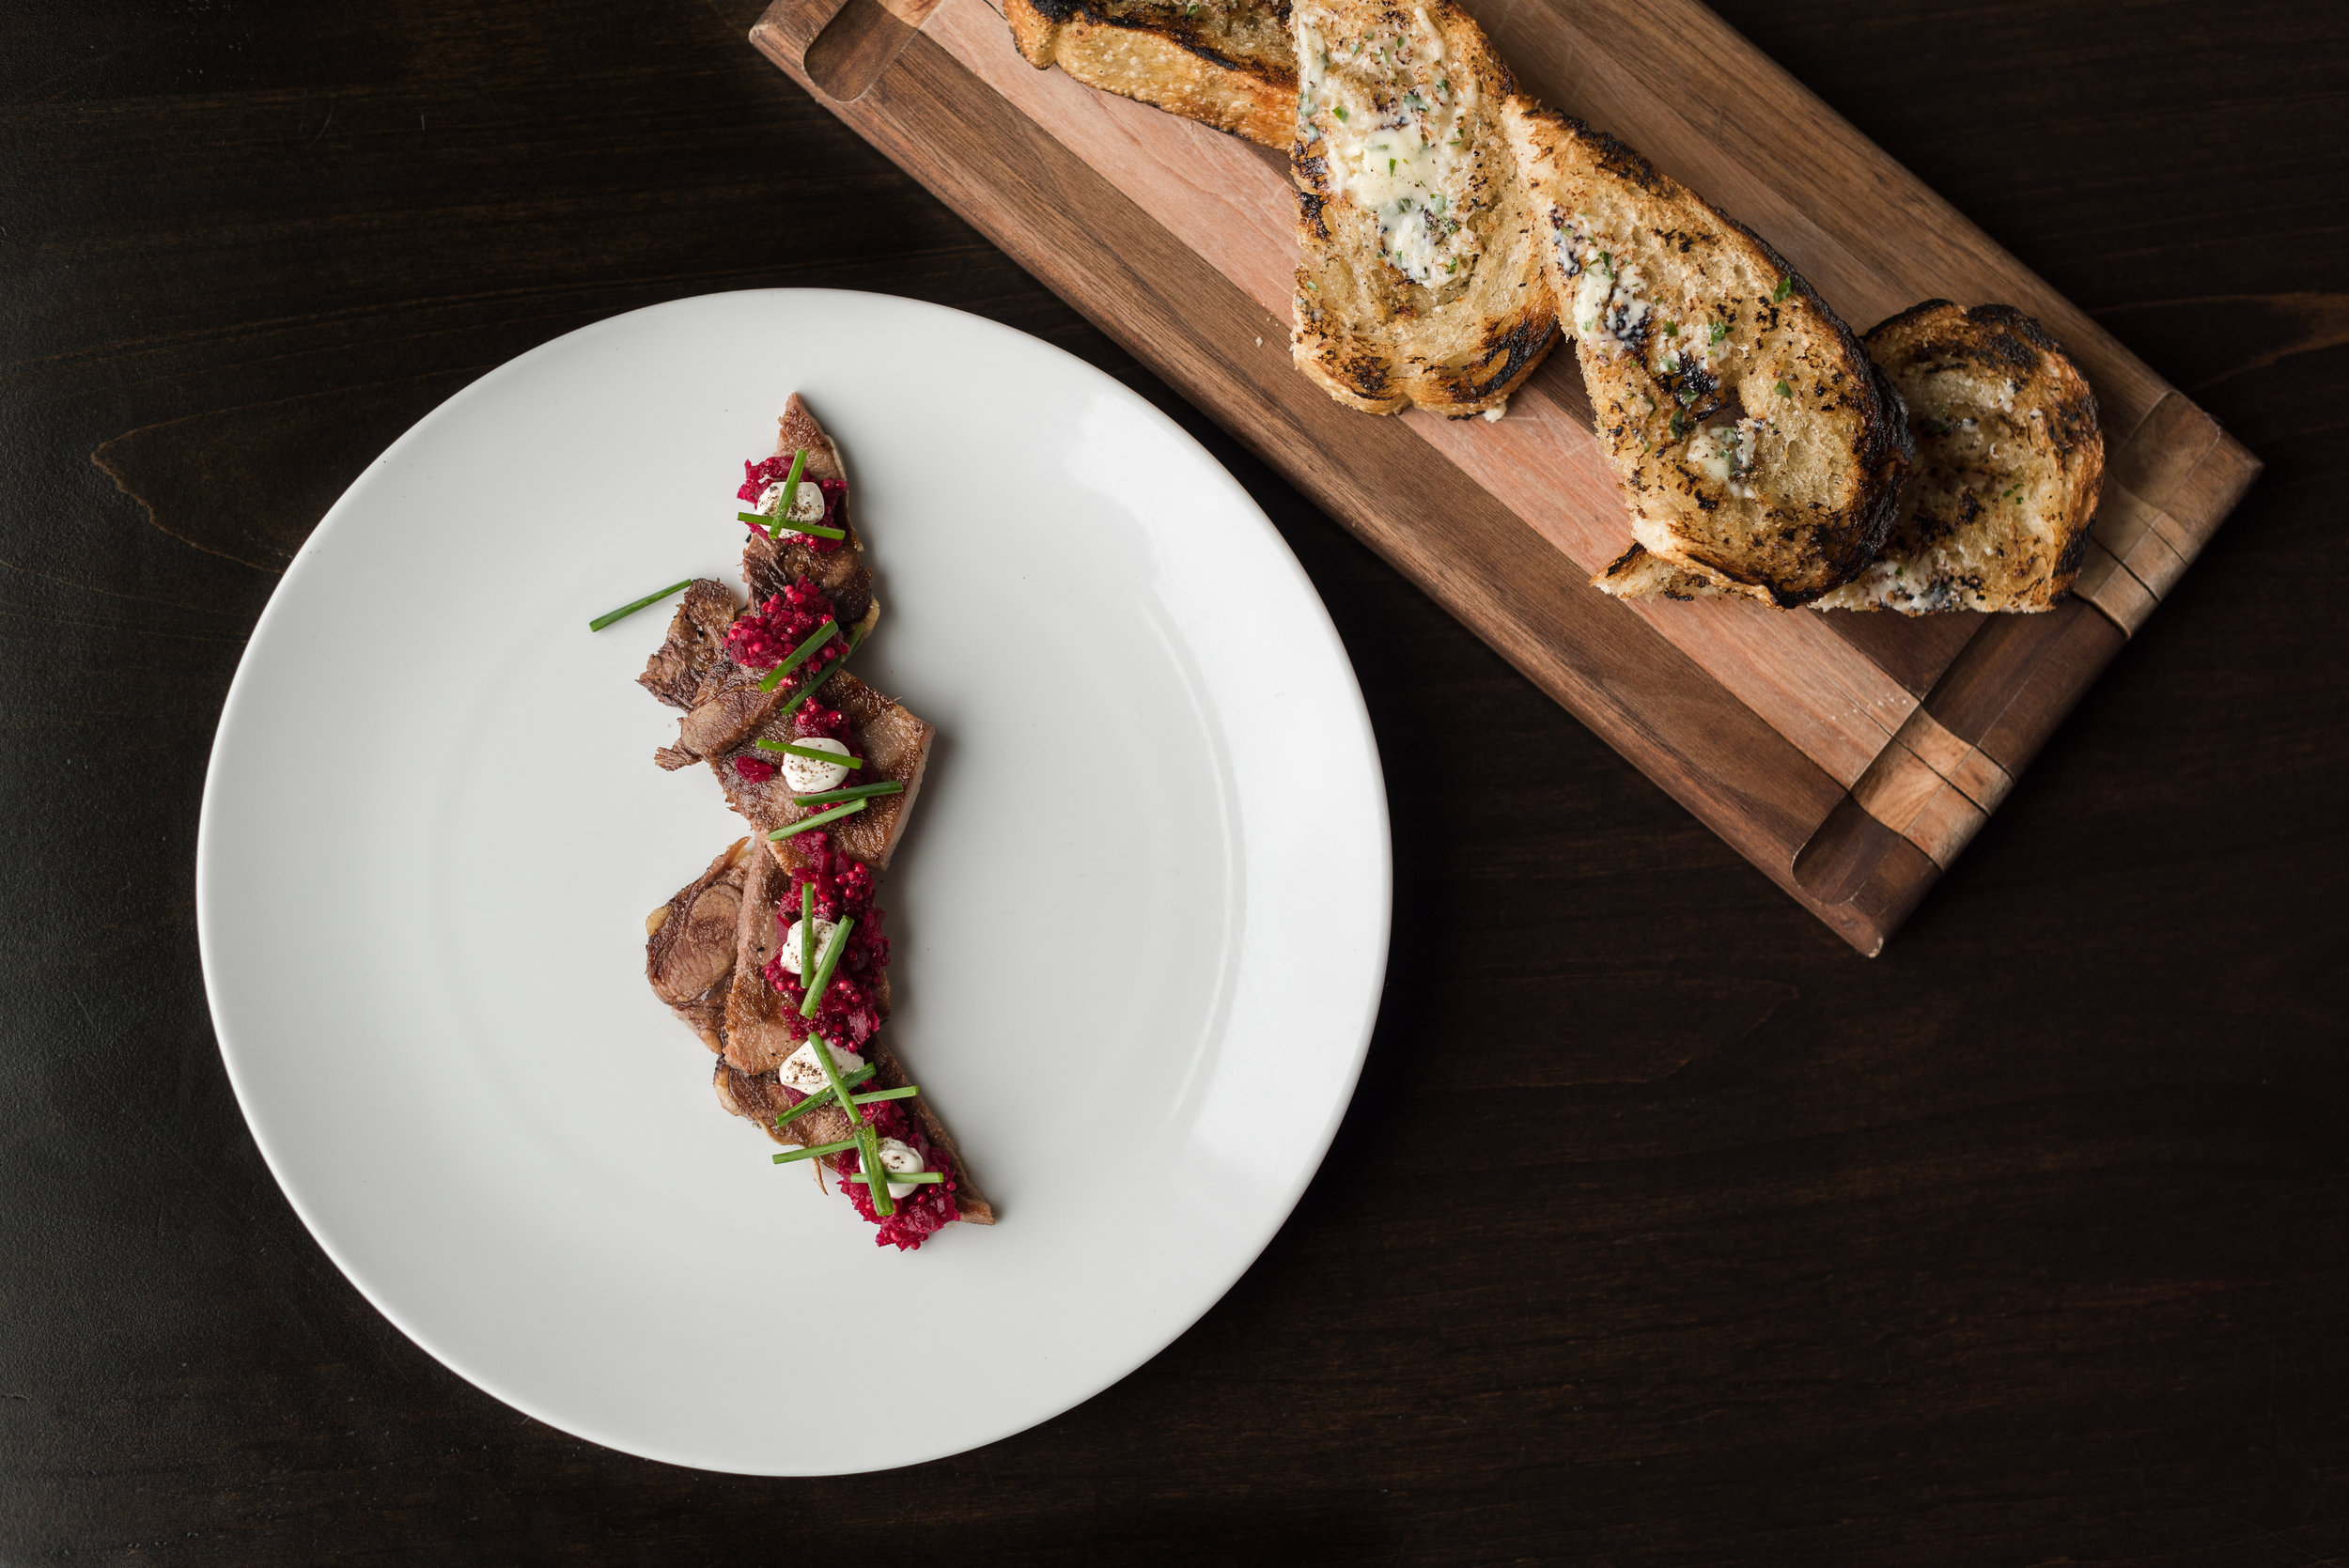 How A SMALL RESTAURANT IN AURORA BECAME NATIONALLY RECOGNIZED (CHERRY CREEK LIFESTYLE)